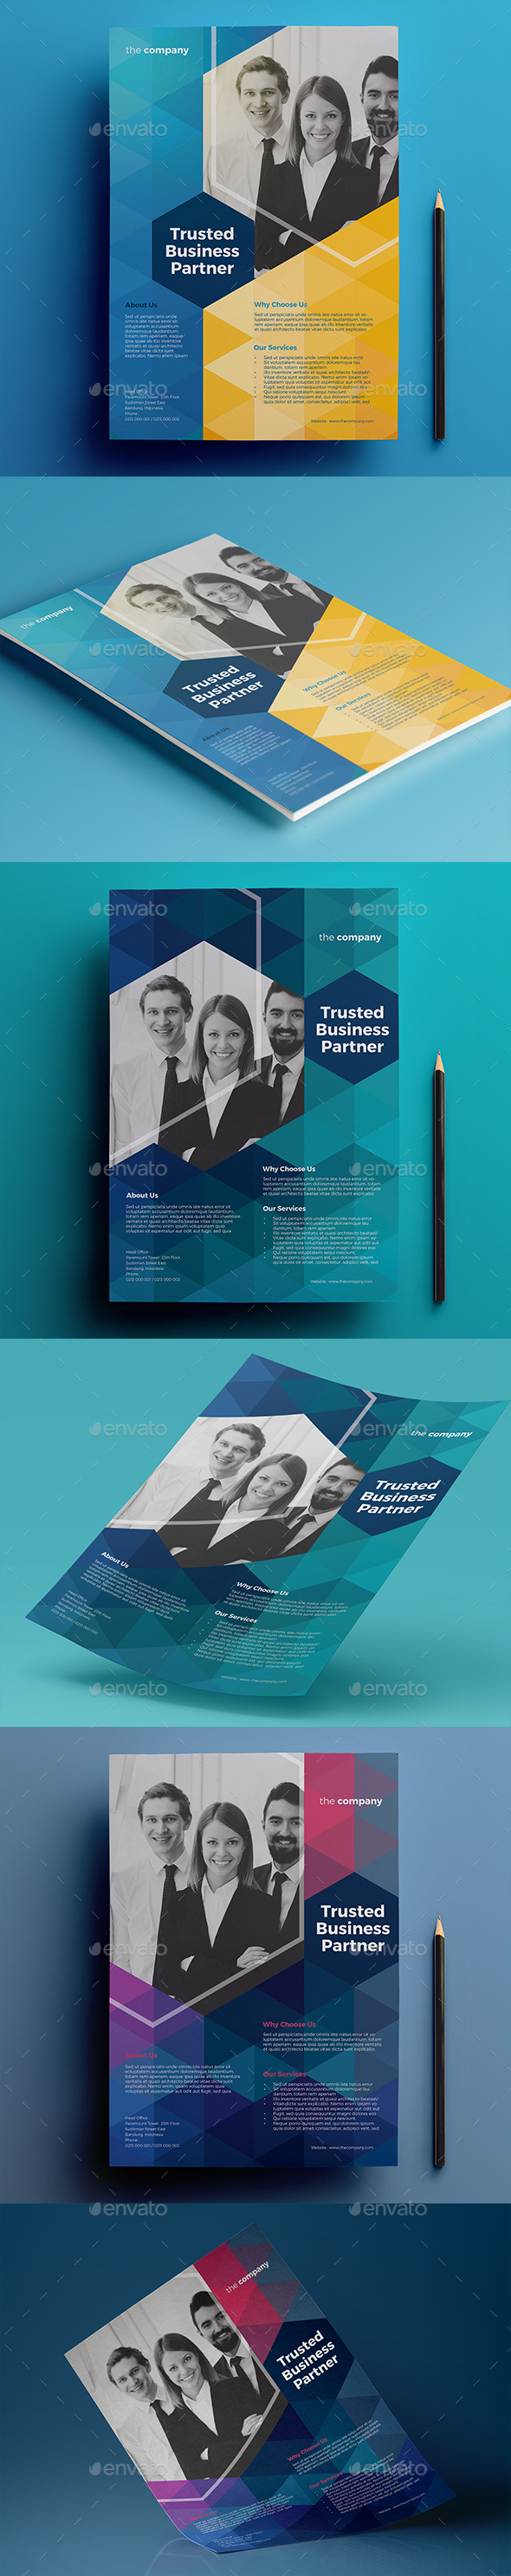 Company Flyer 05 - Corporate Flyers